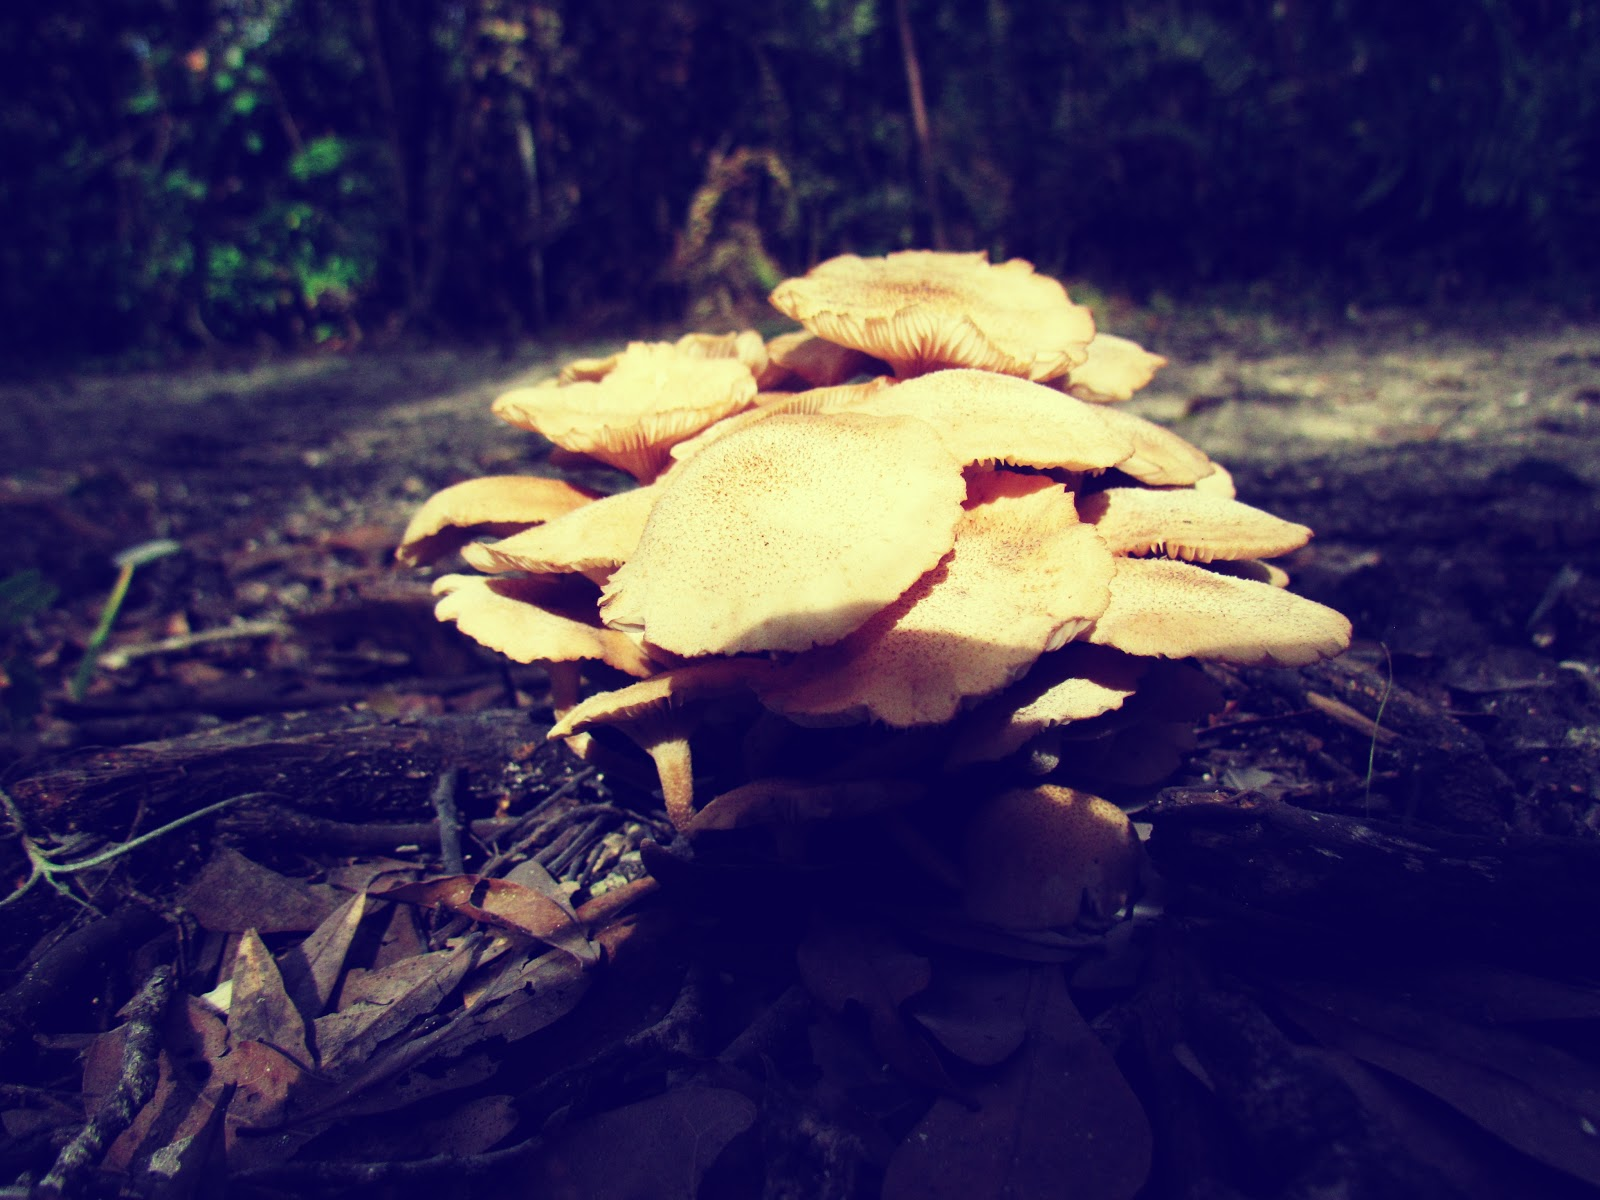 Mushroom Fairy Rings + Edible Mushrooms for Hiking Pretty